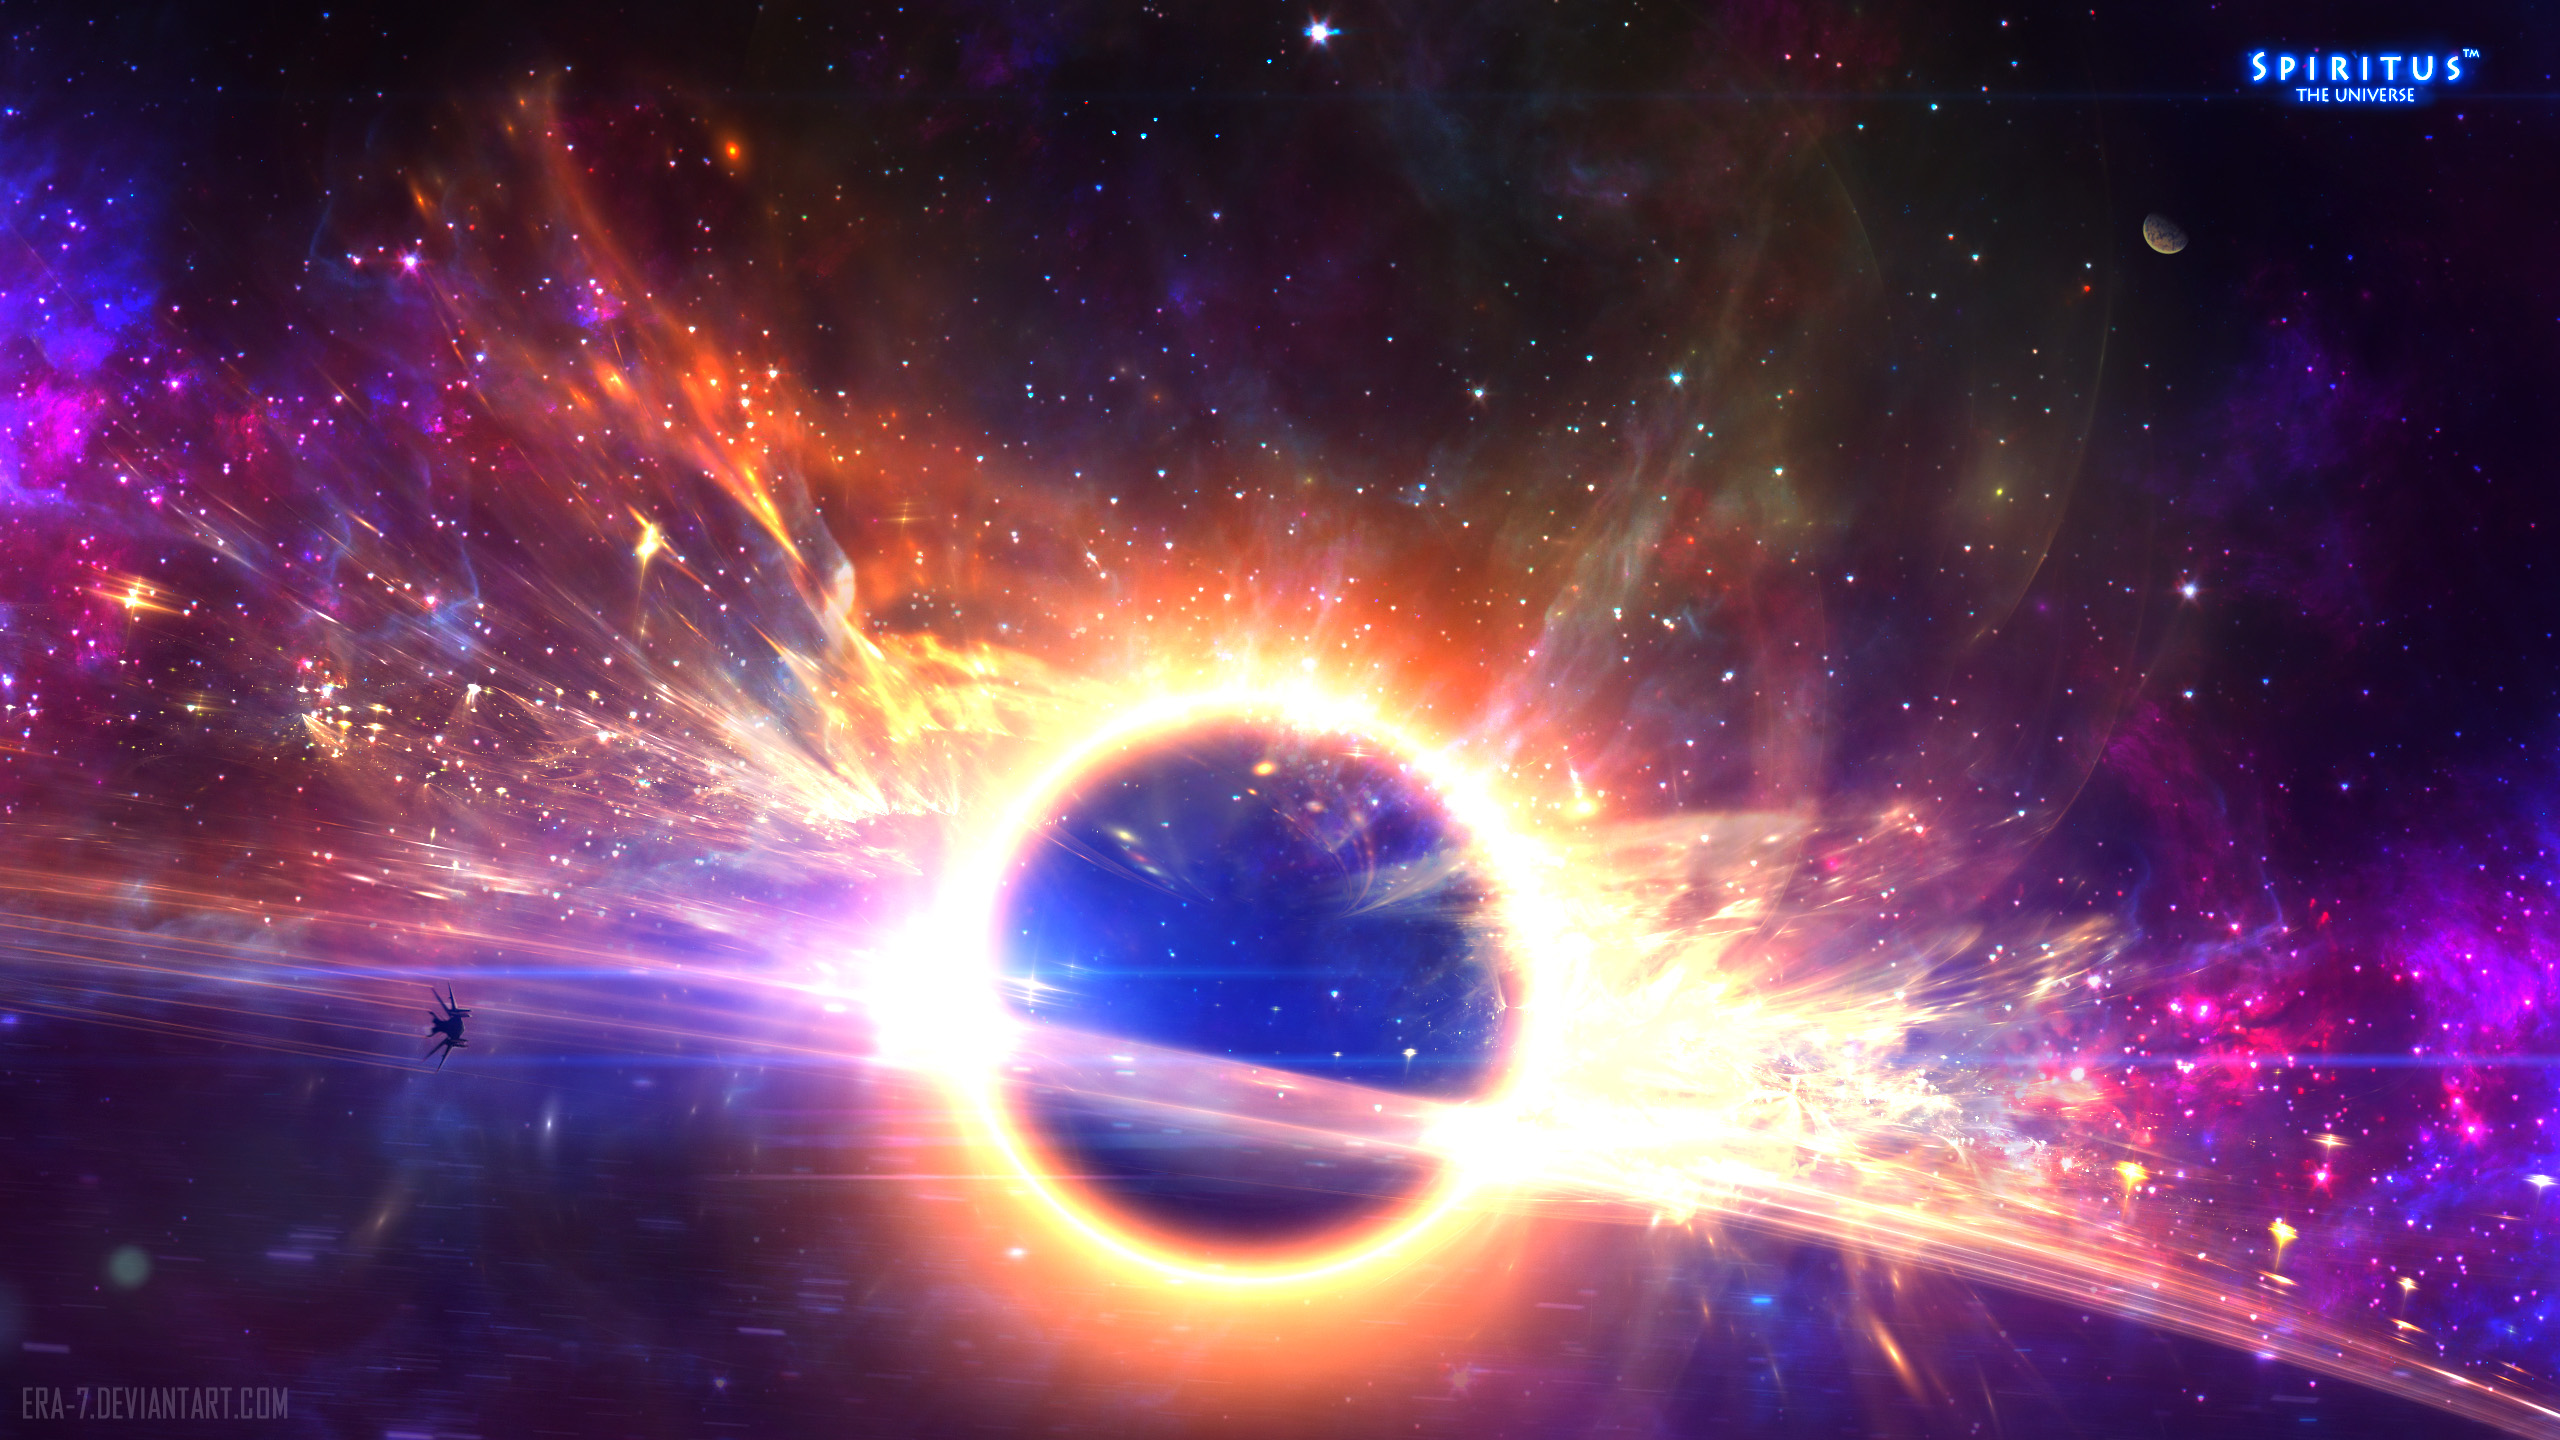 Wormhole hd wallpaper background image 2560x1440 id - Black space wallpaper ...